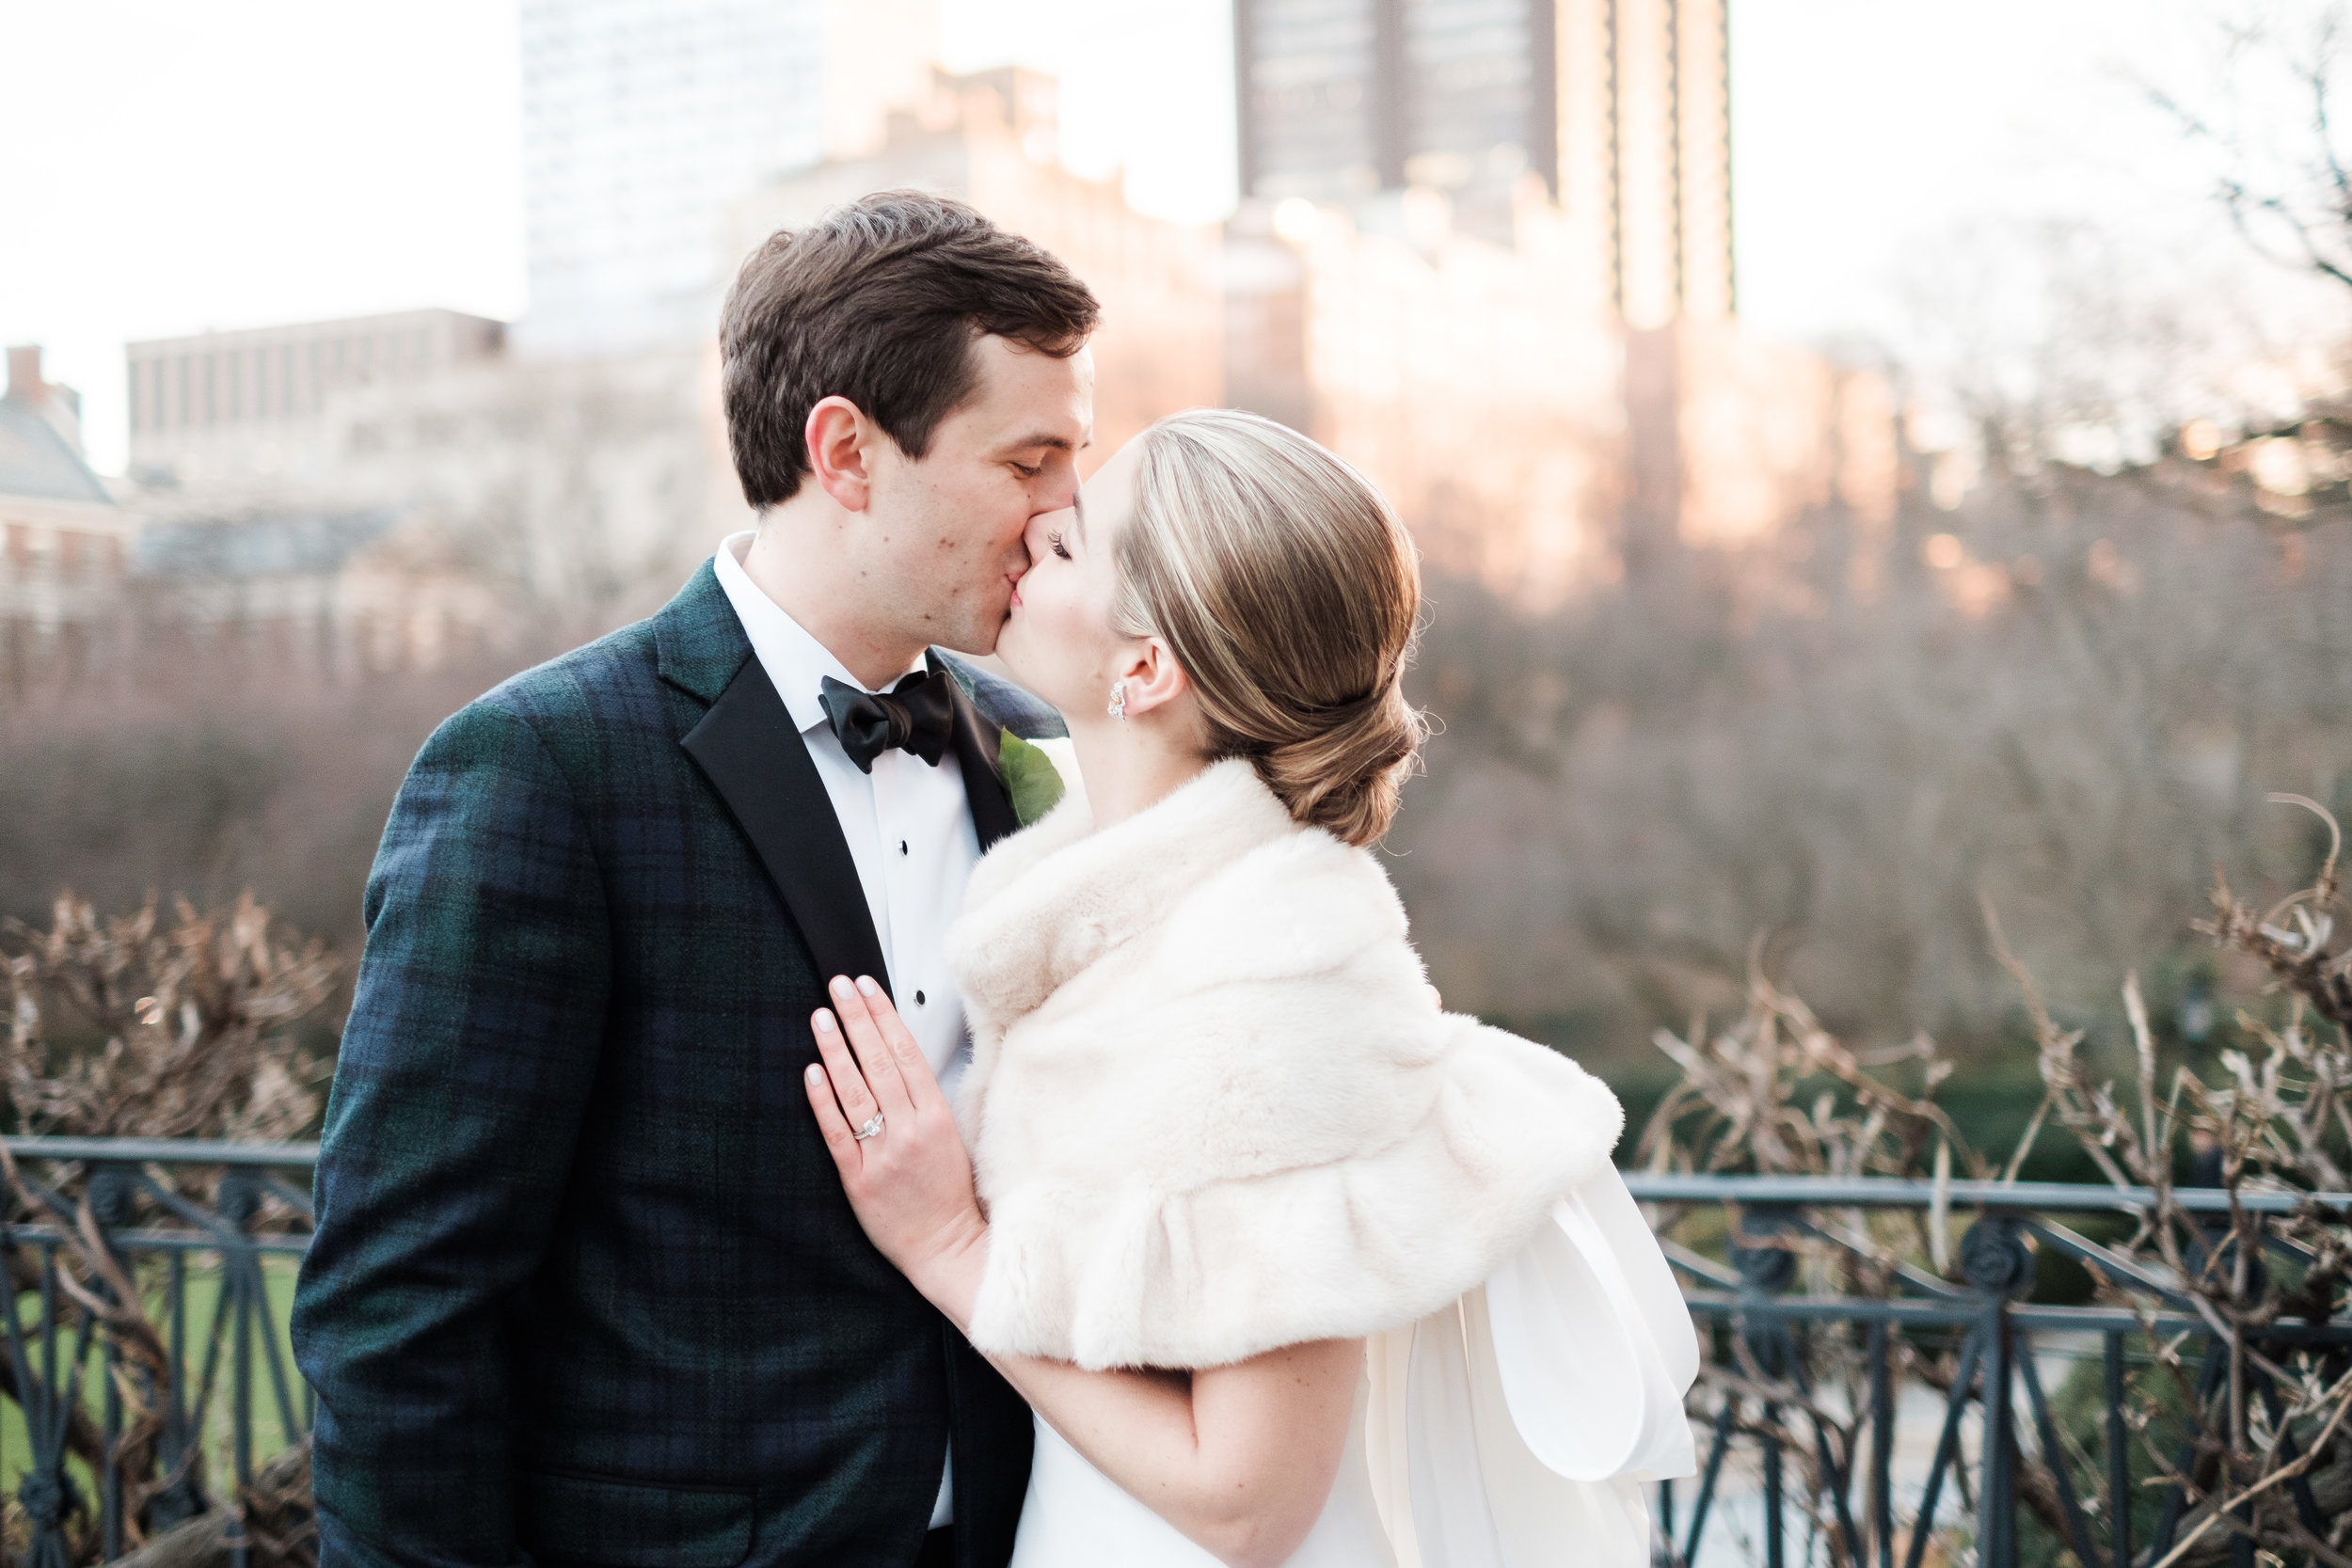 Courtney and Colin - Central Park Loeb Boathouse - Winter Wedding Inspiration - NYC Wedding Photographer - New York Wedding Photographer -36.jpg